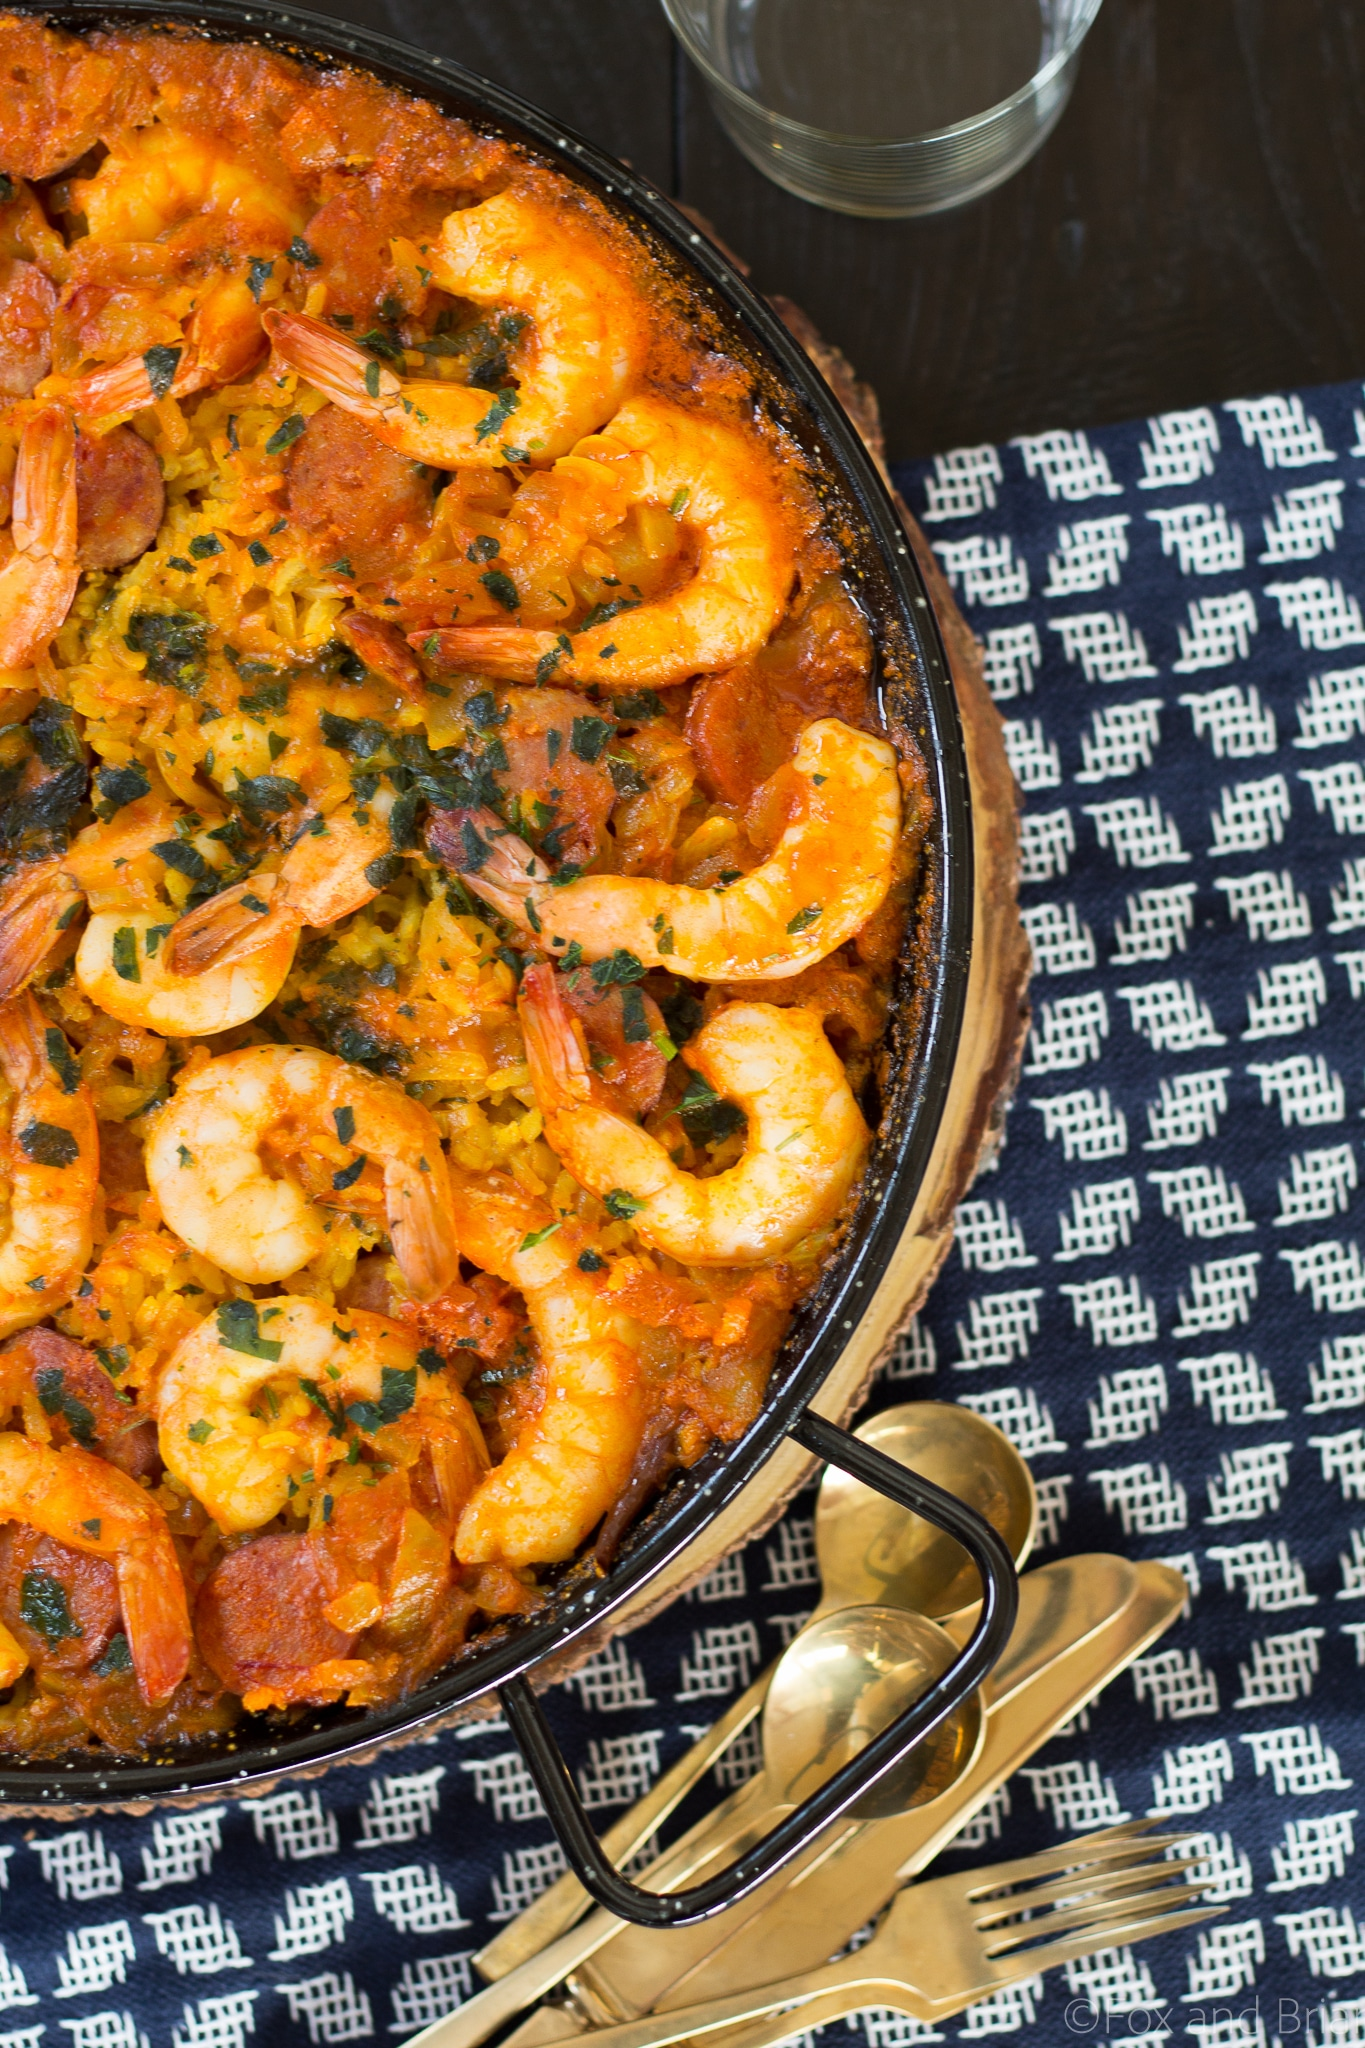 This spanish dish Paella is easy to make, has classic Spanish paella ingredients and is an impressive crowd pleaser.